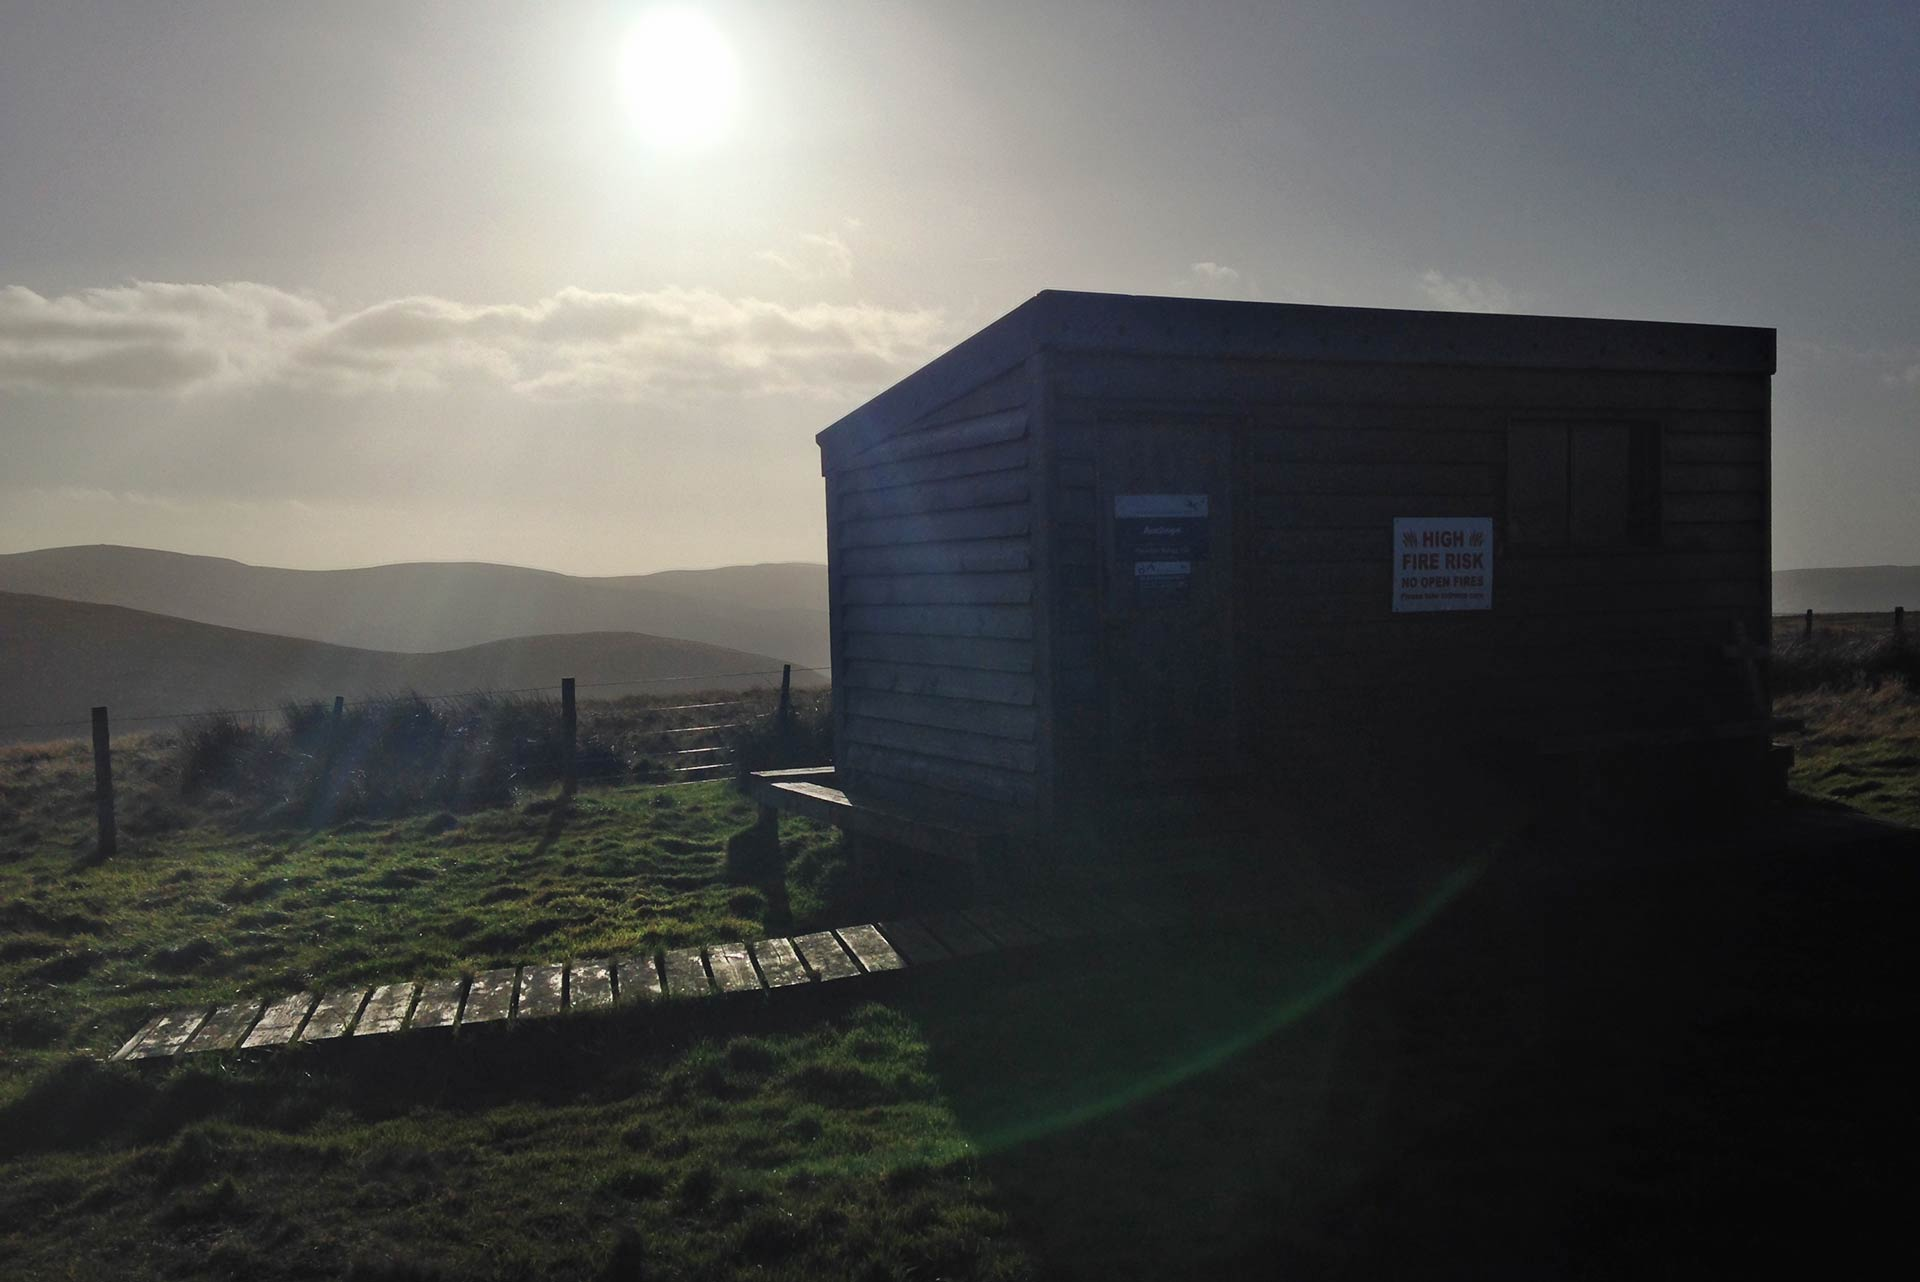 Auchope mountain refuge hut